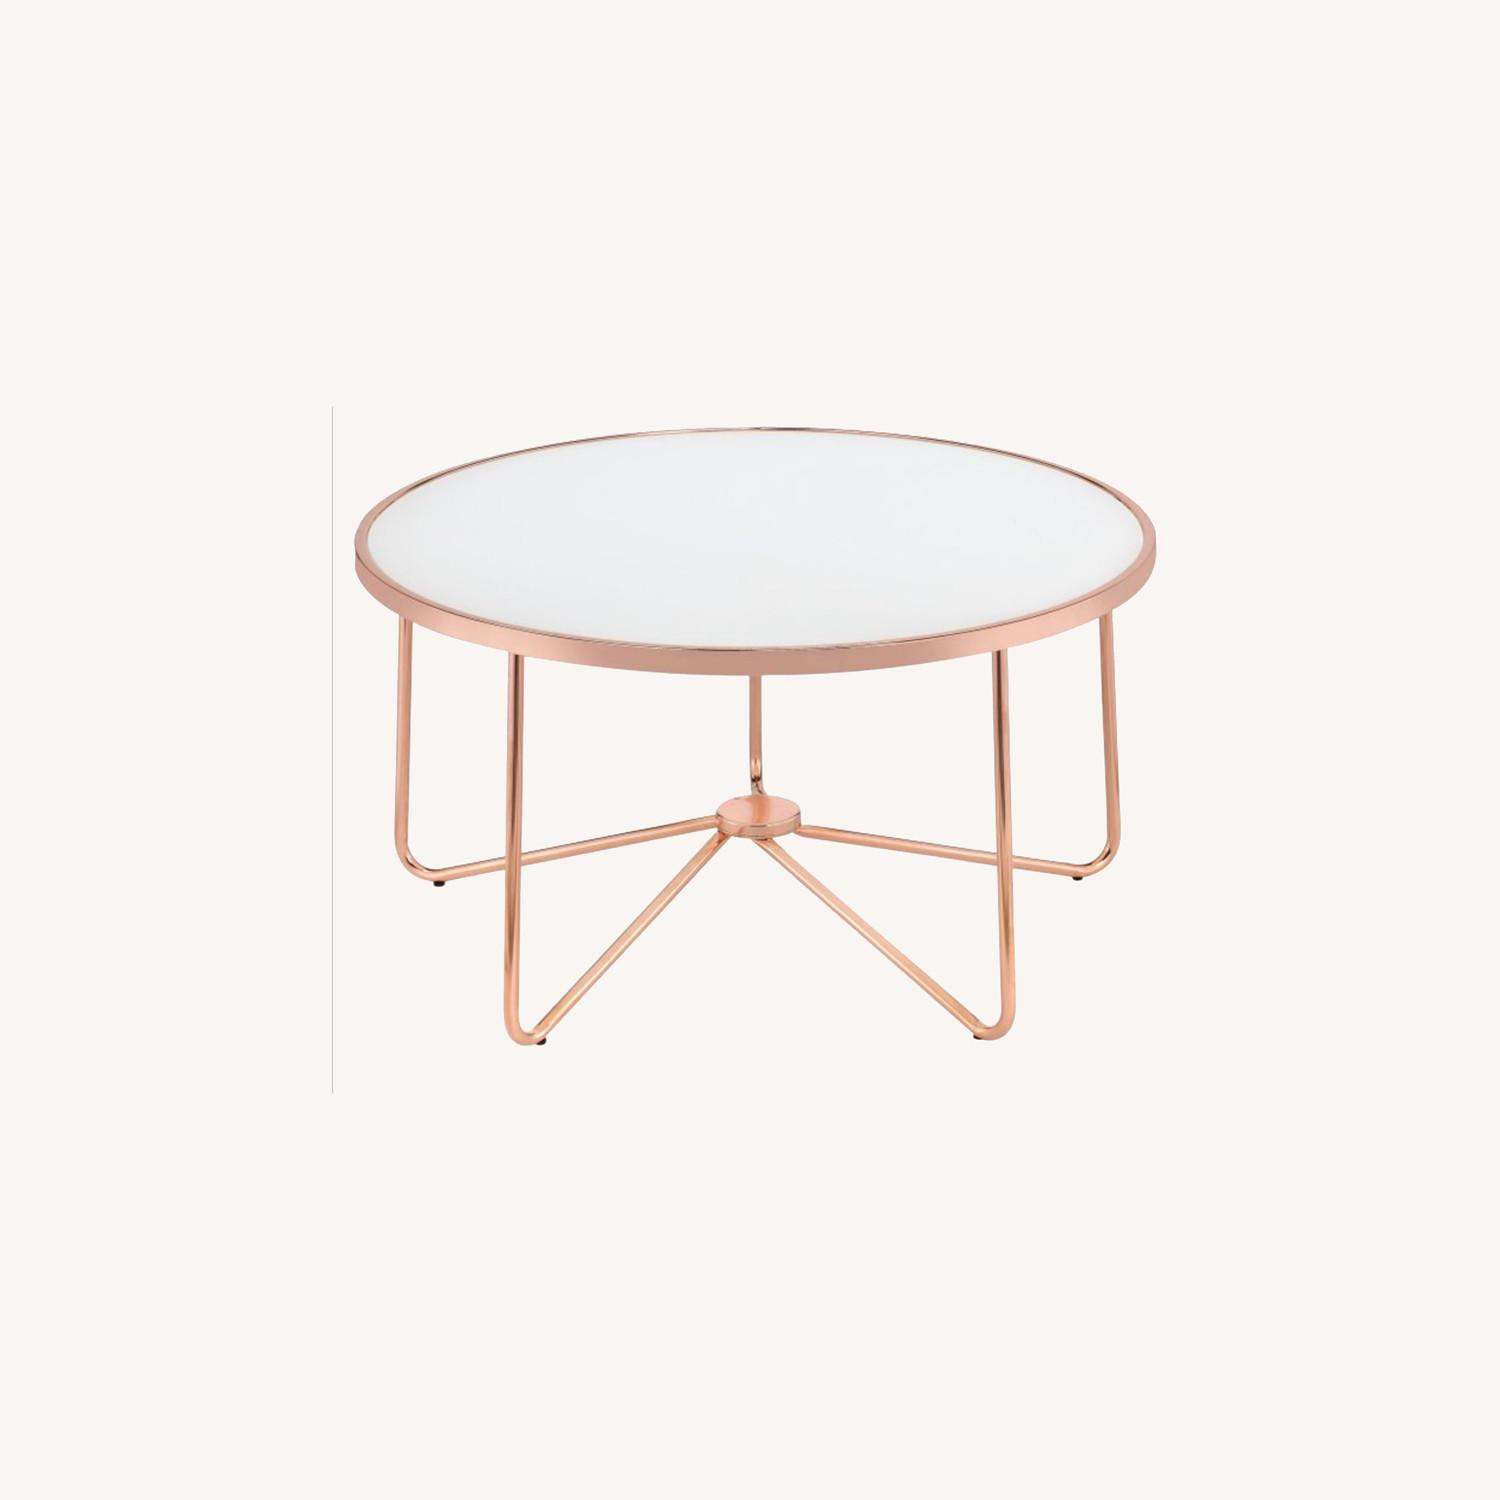 Hayneedle Frosted Glass Copper Coffee Table - image-0